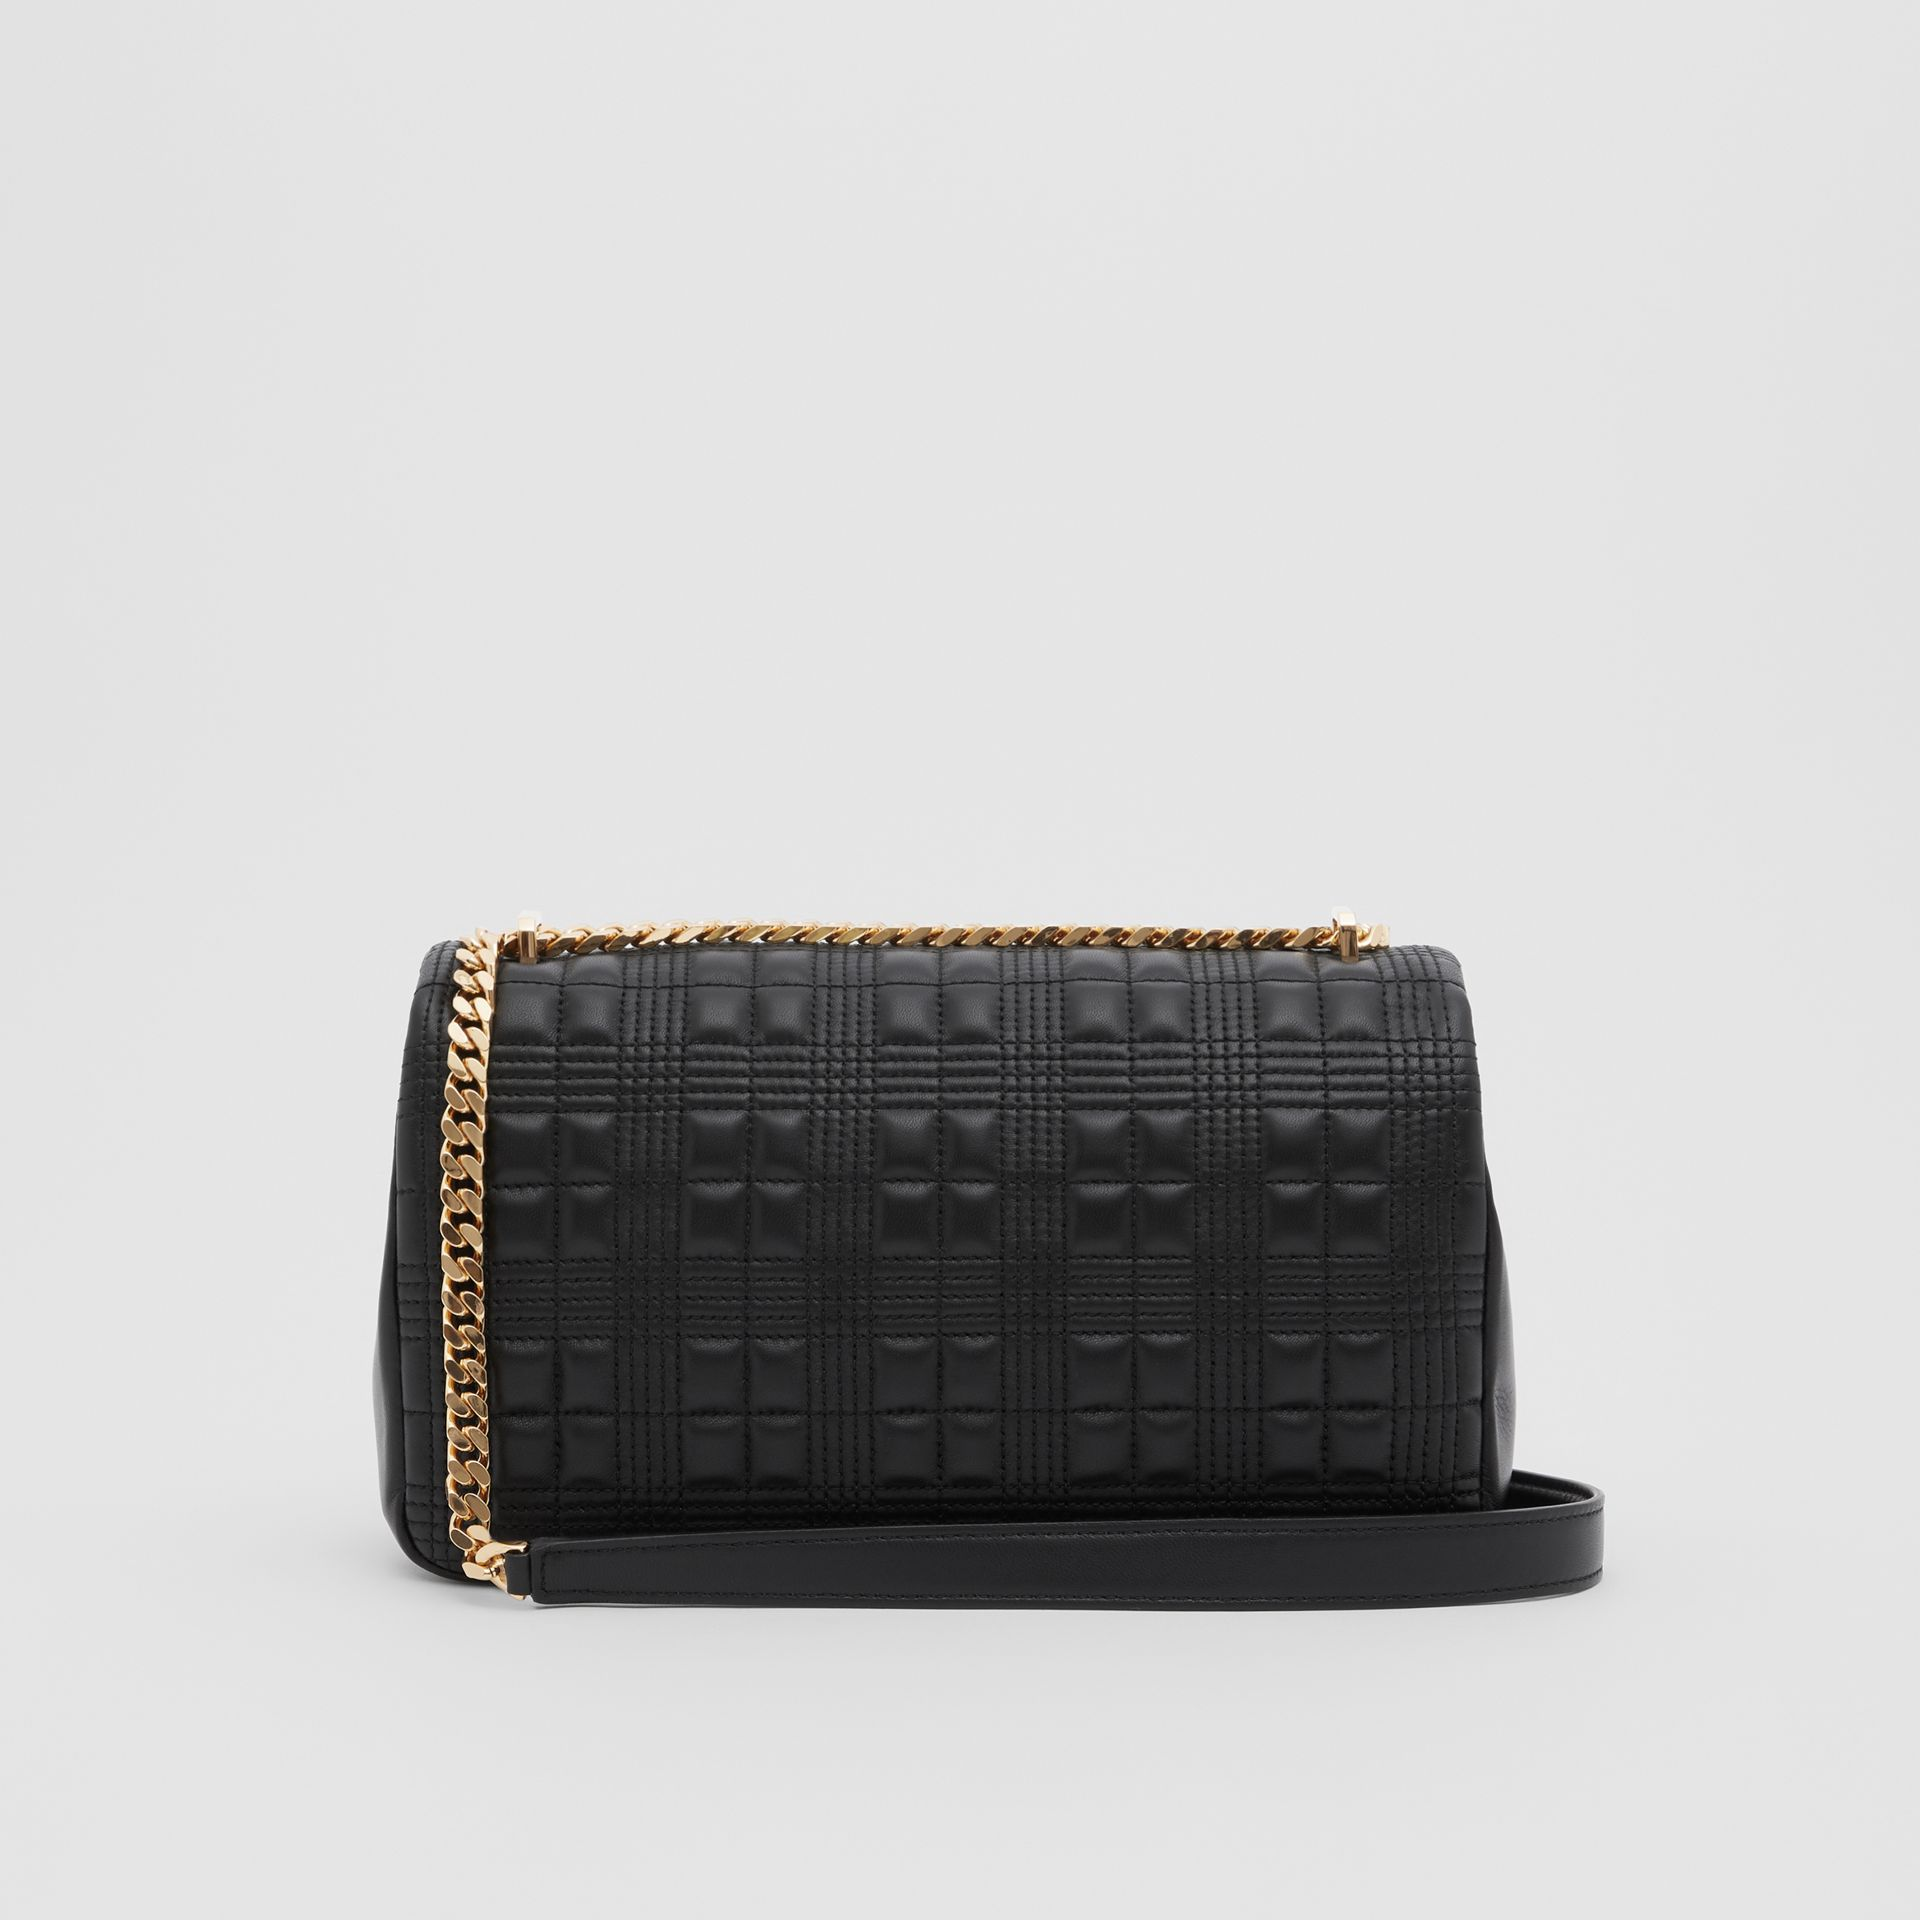 Medium Quilted Check Lambskin Lola Bag in Black - Women | Burberry - gallery image 5